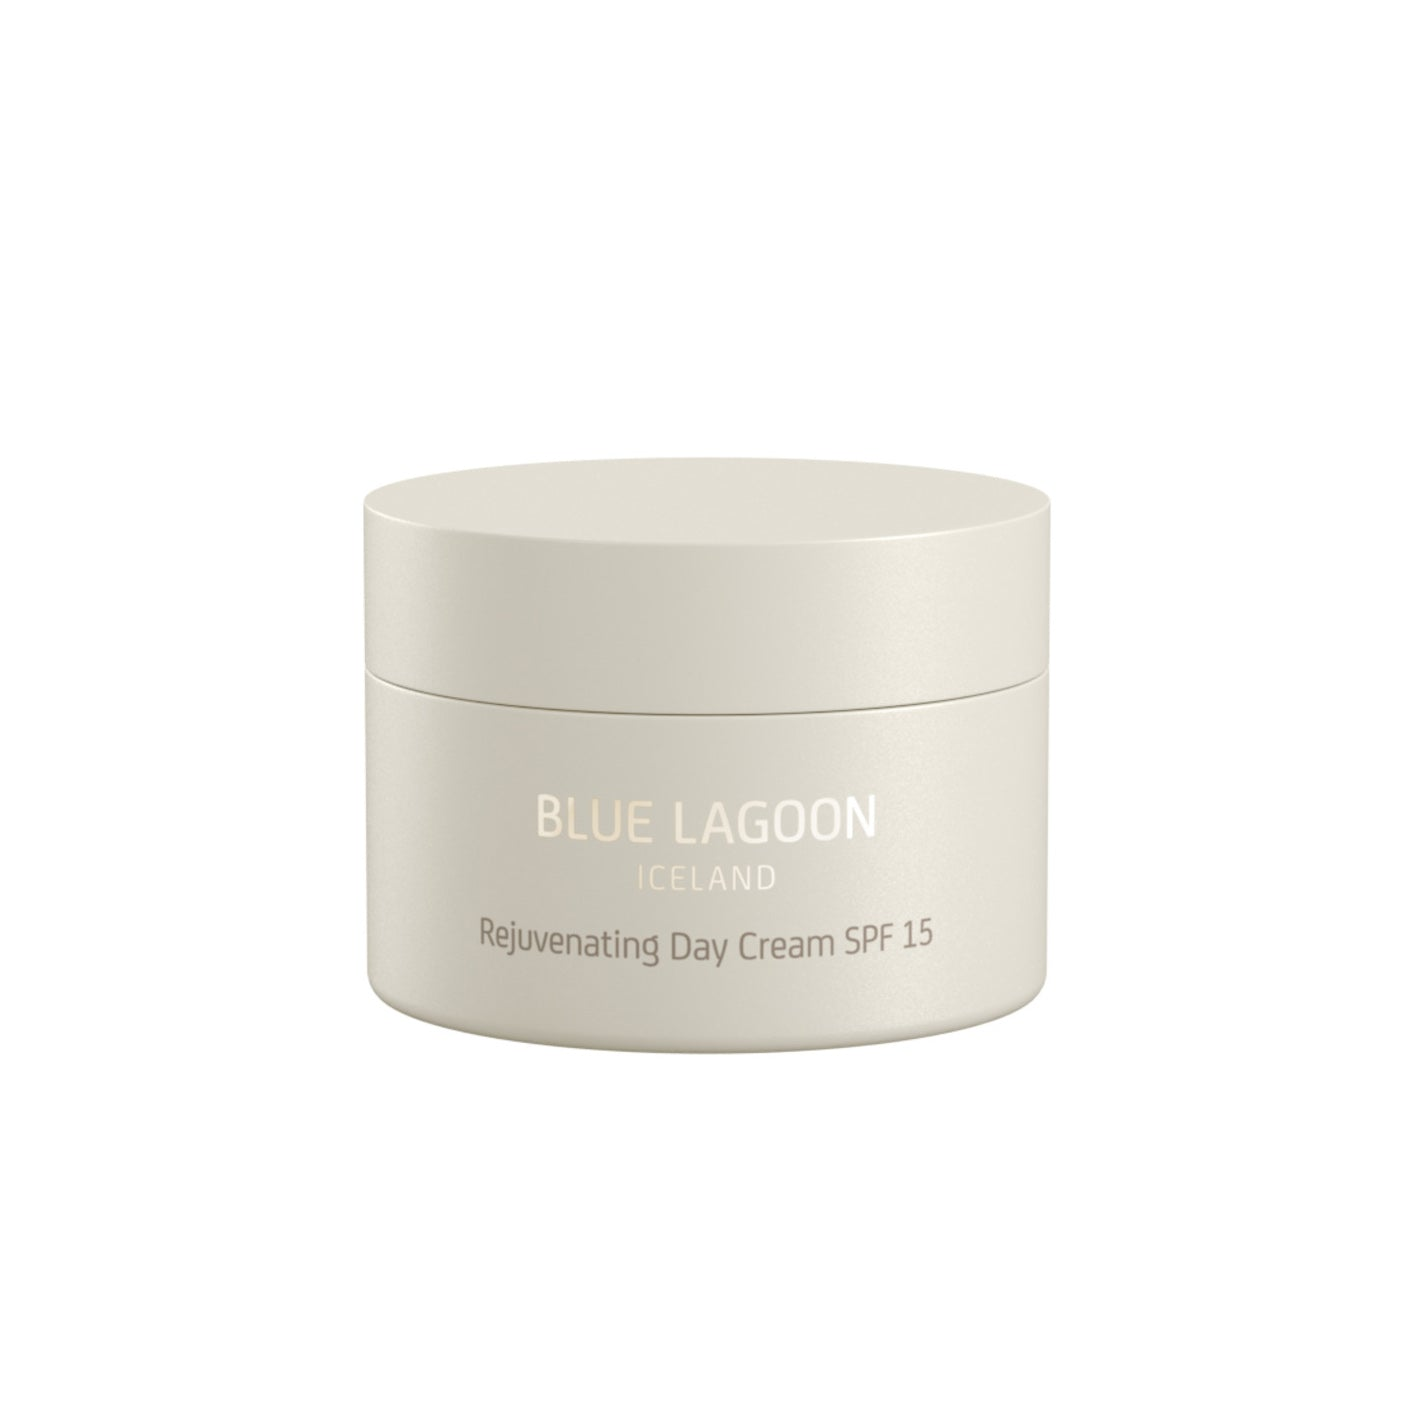 REJUVENATING DAY CREAM SPF 15